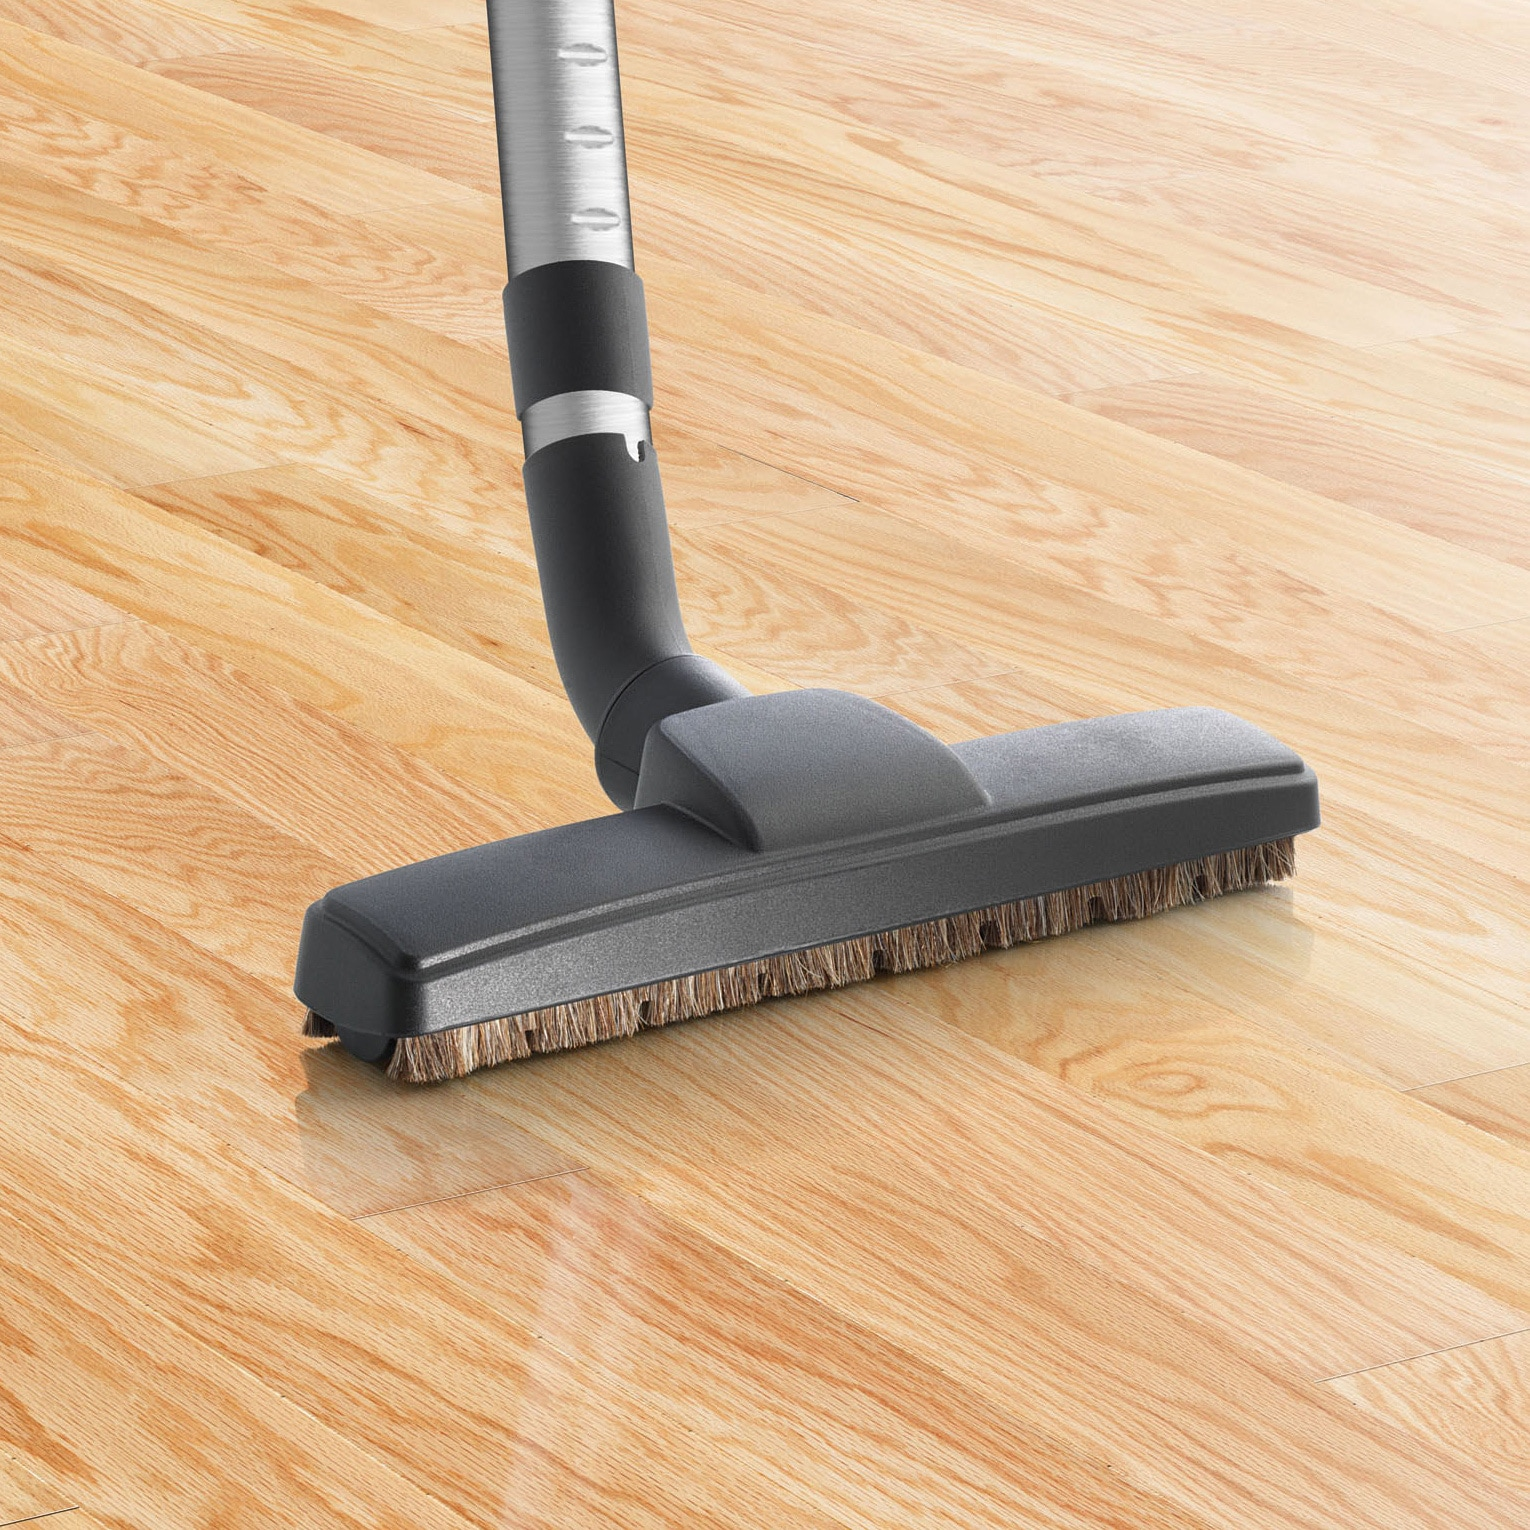 design picture size mop floor of wonderful and full best wood steamerwood cleaner attachmentwood reviews vacuum